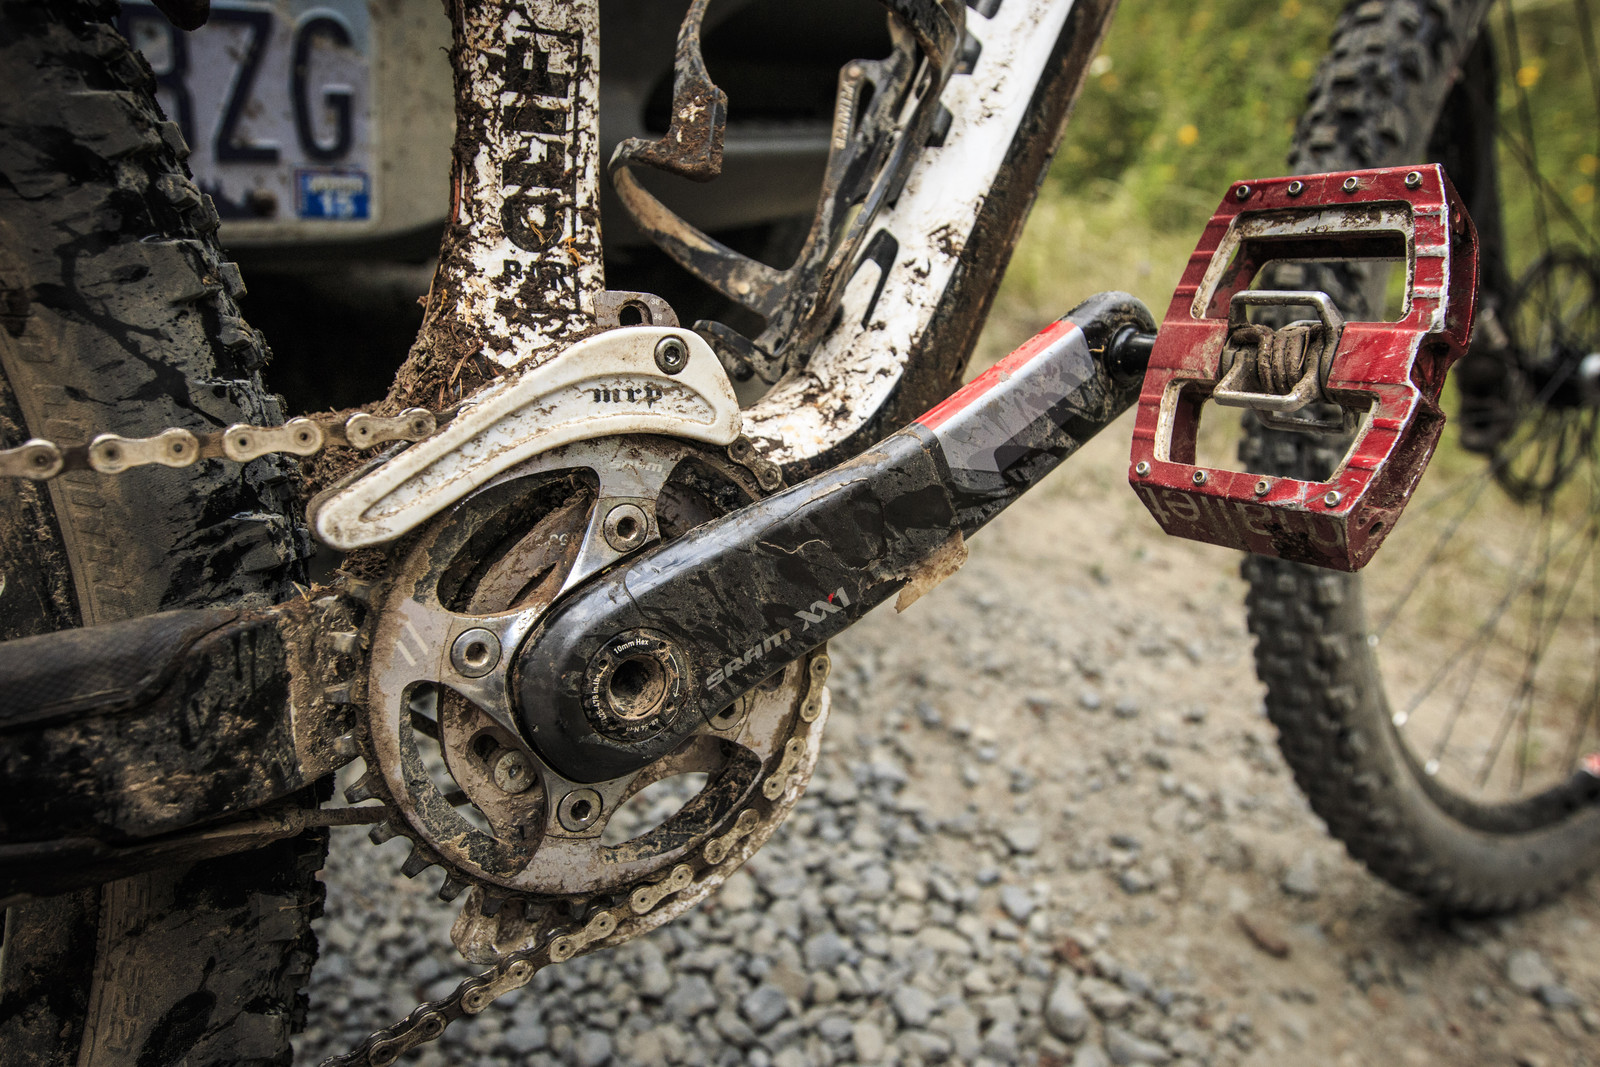 SRAM XX1 and Crank Brothers Mallets on Kirt Voreis' Specialized Enduro 29 - WINNING BIKE: Kirt Voreis' Specialized Enduro 29 - Mountain Biking Pictures - Vital MTB